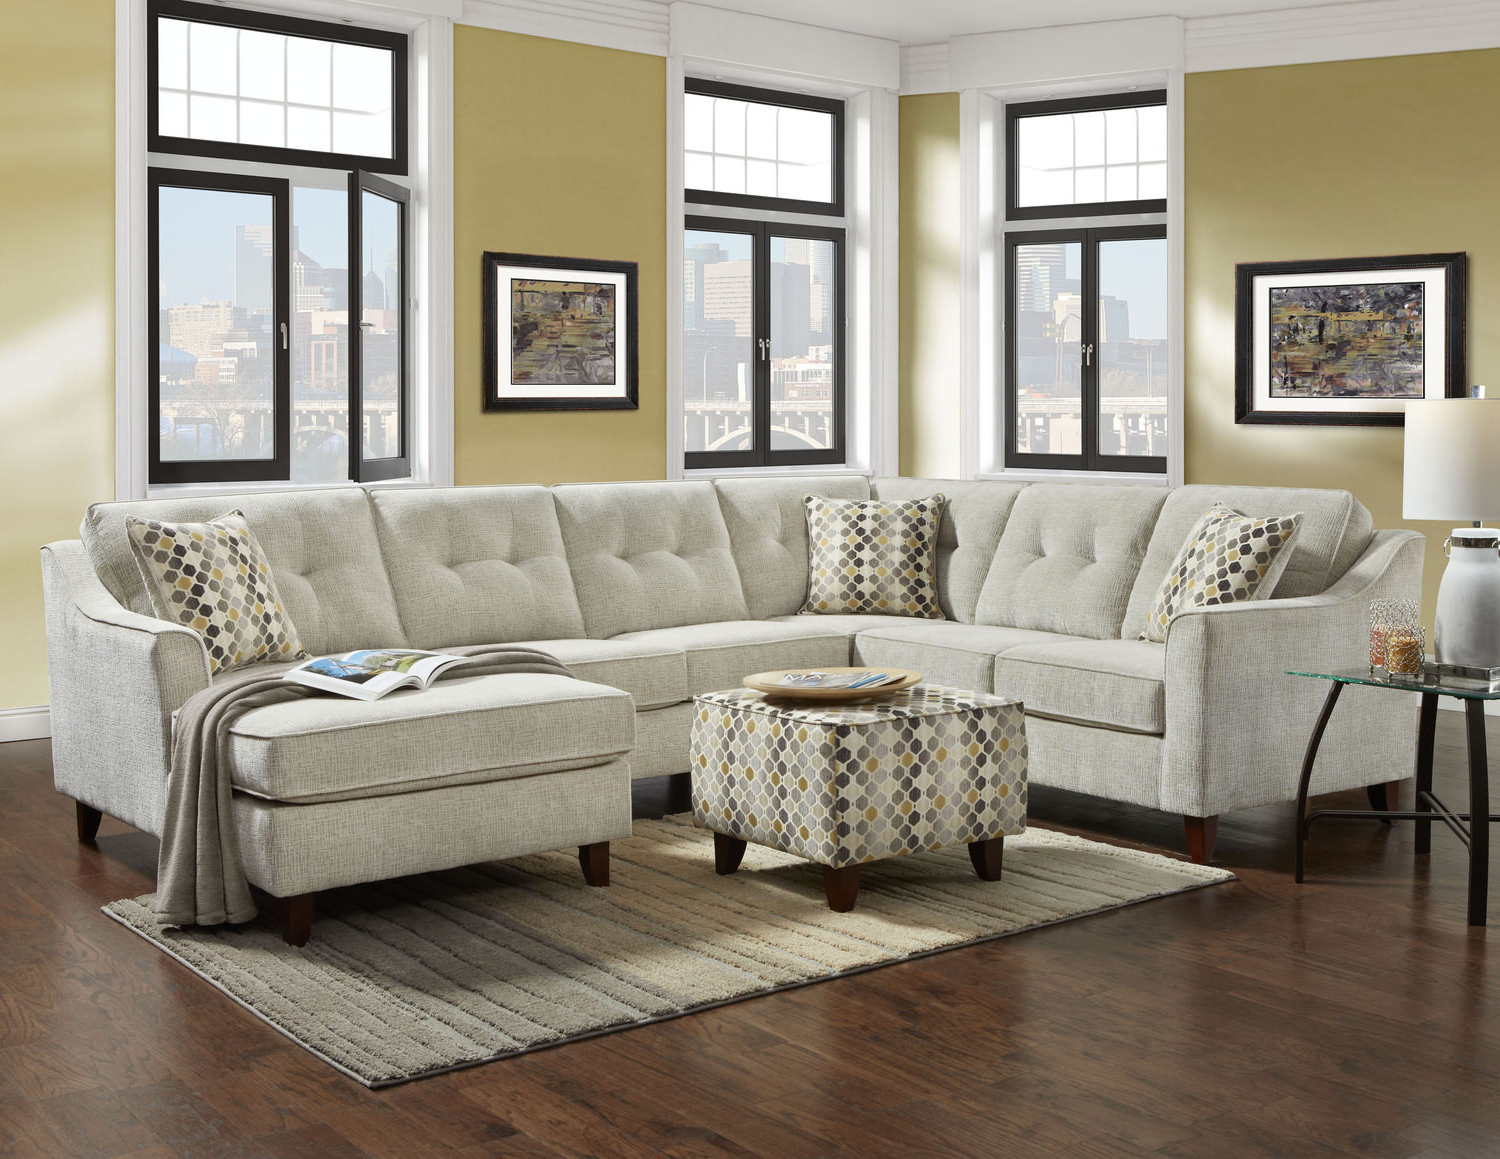 Malbry Point 3 Piece Sectionals With Raf Chaise Throughout Most Up To Date Colby 3 Piece Sectional Dock86 – Locsbyhelenelorasa (View 11 of 20)